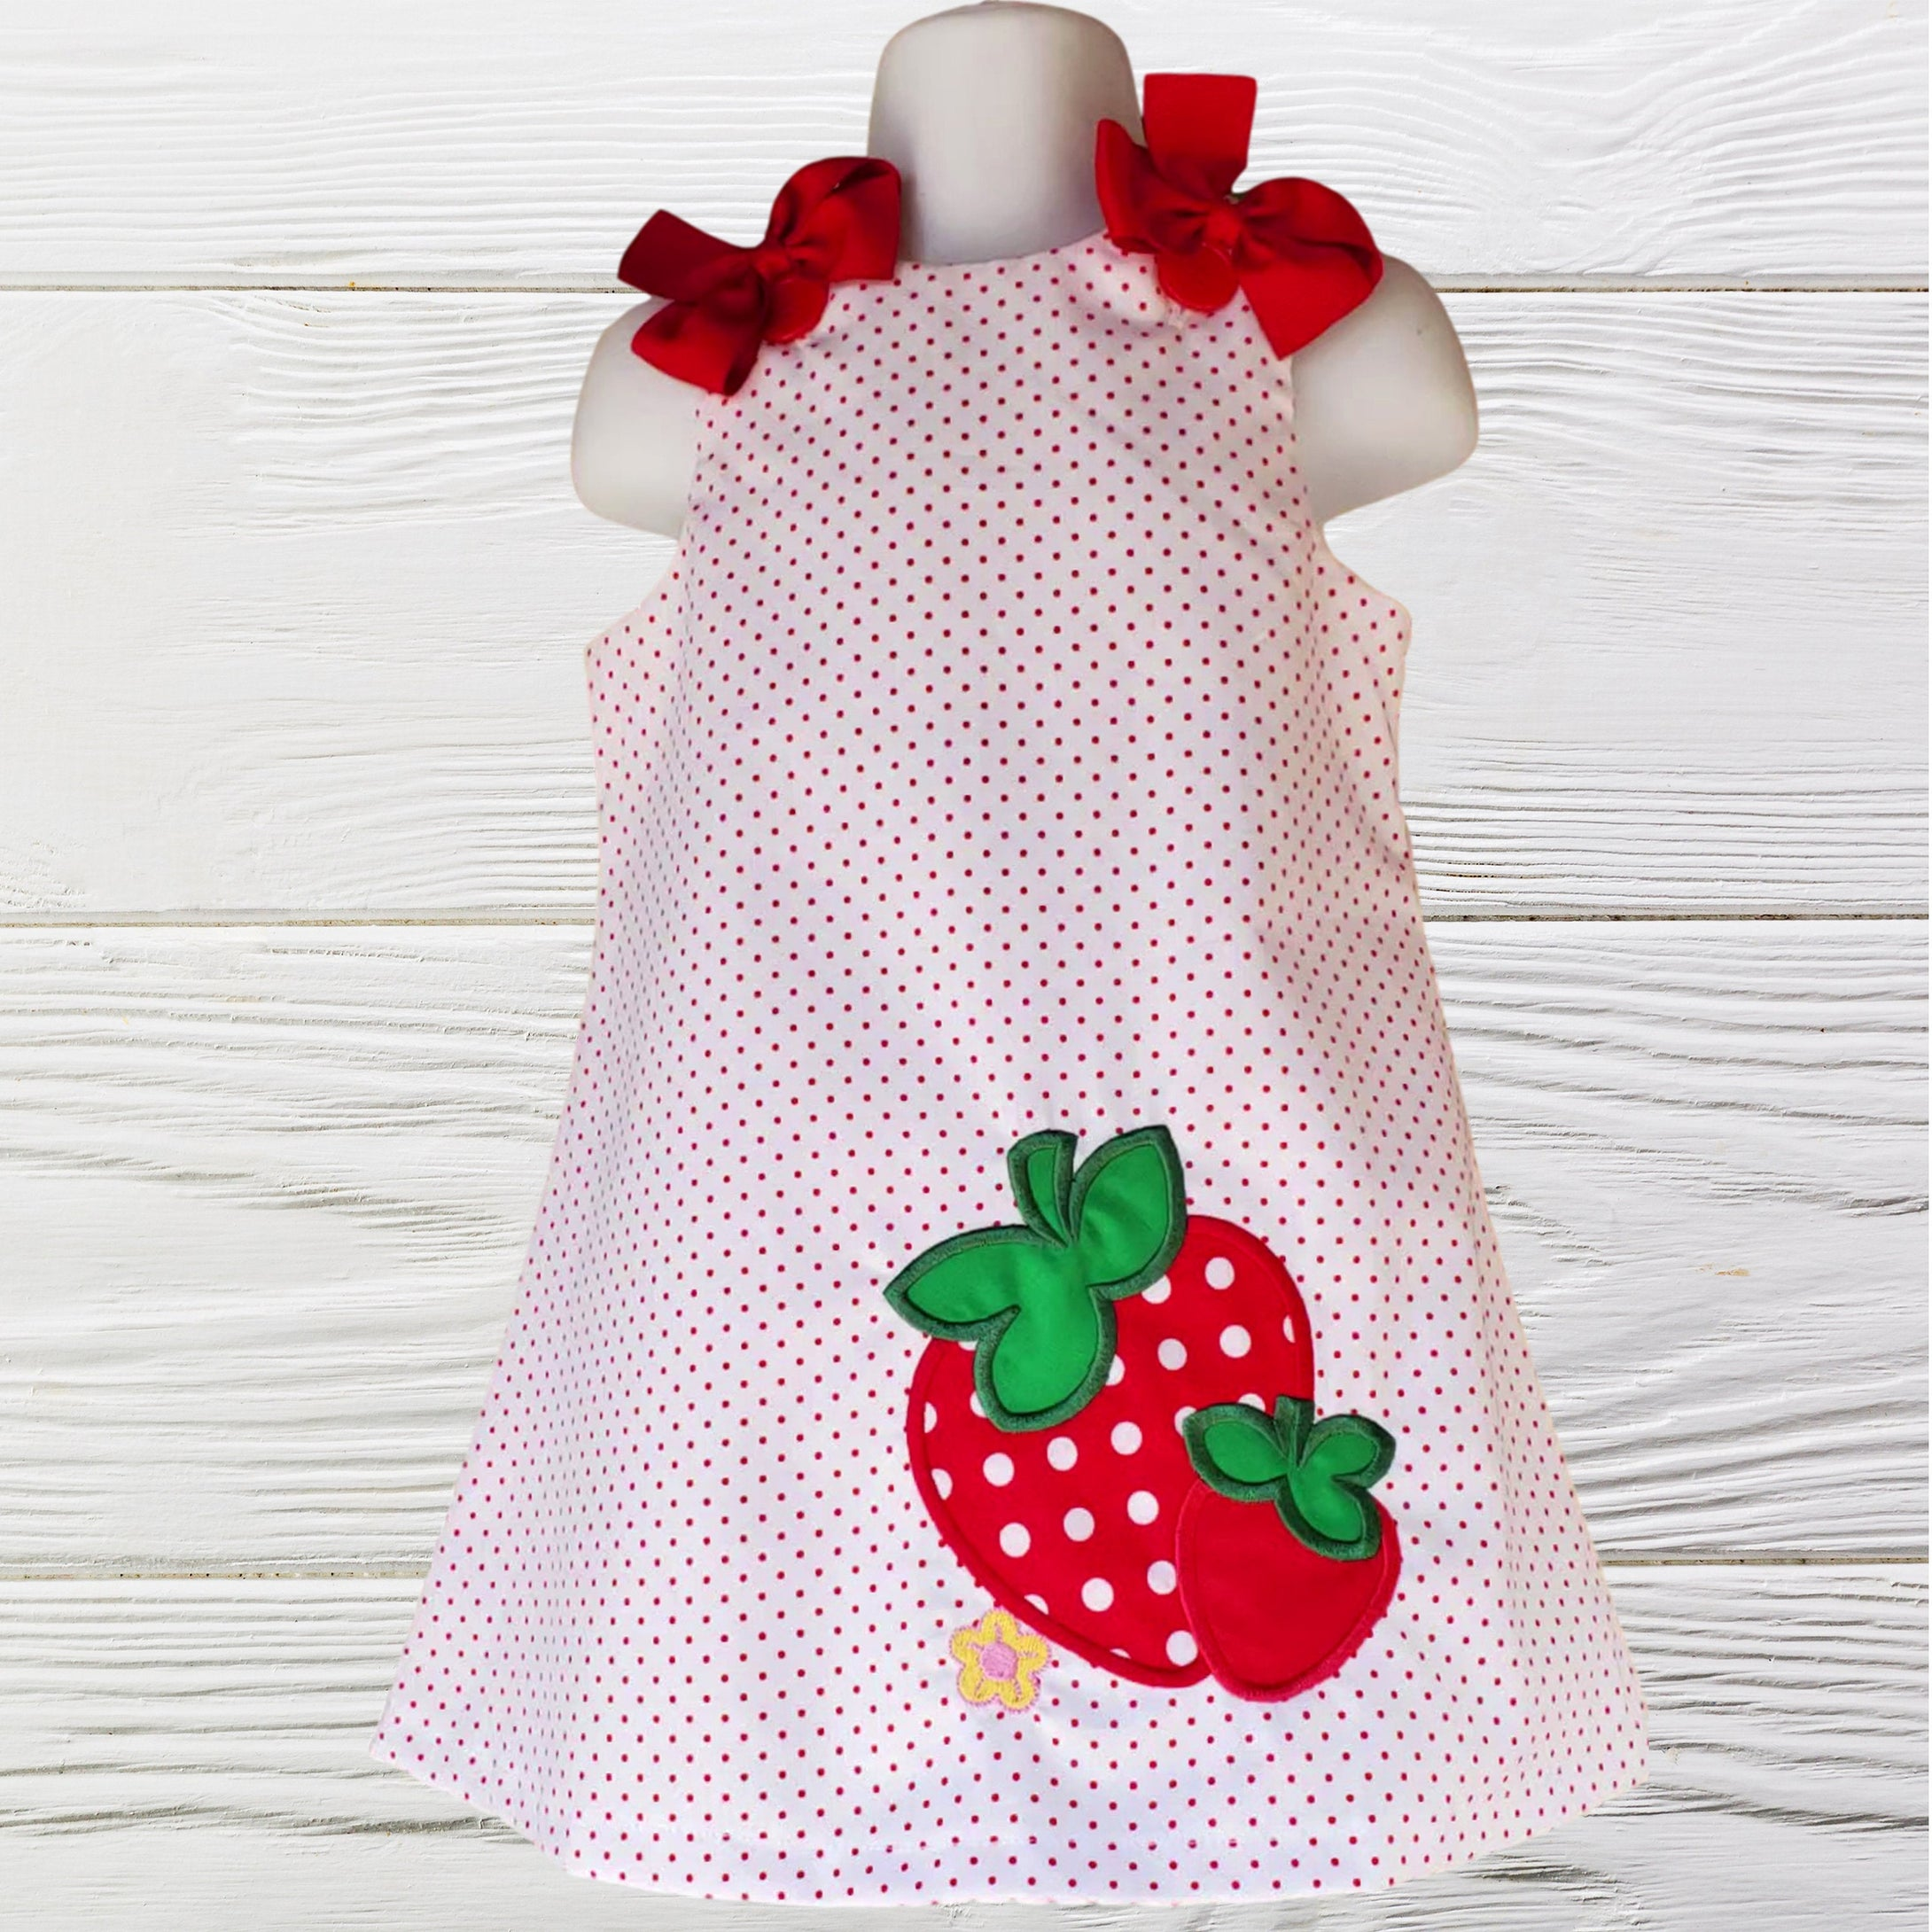 Strawberry dress - Birthday Strawberry polka dots dress - Girls personalized Strawberry dress - A-line Strawberry toddler dress